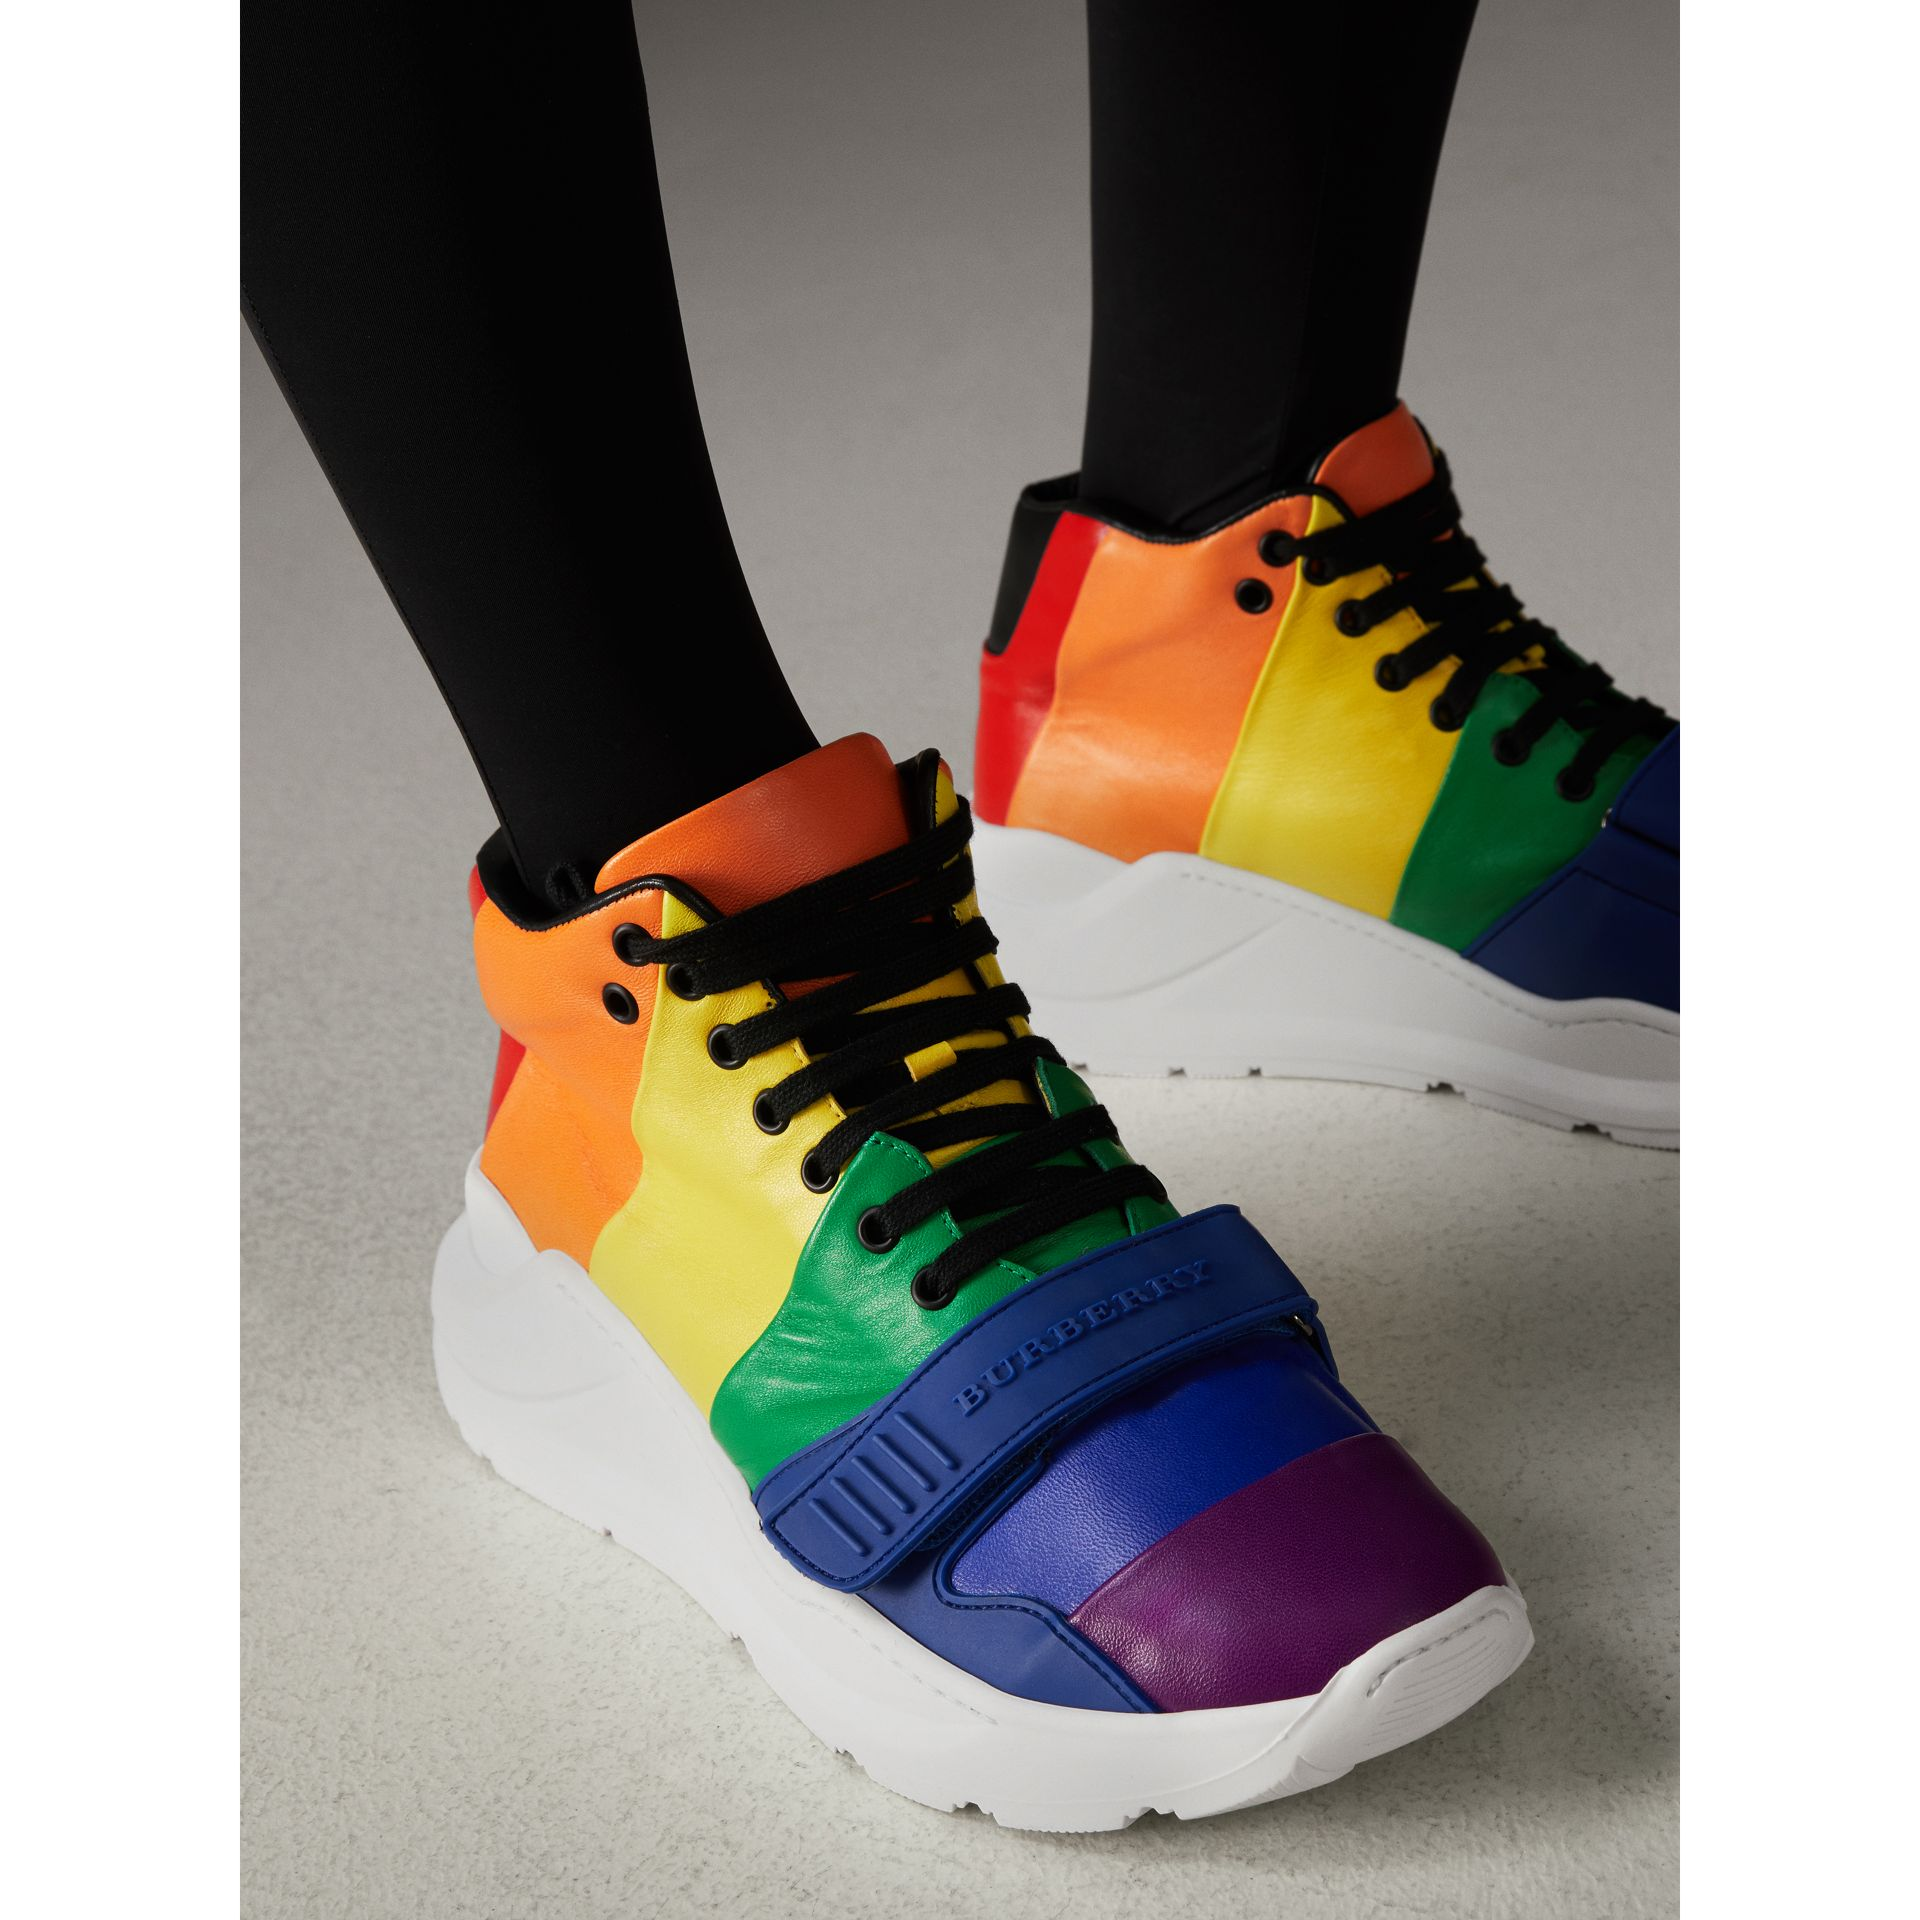 Sneakers montantes en cuir arc-en-ciel | Burberry - photo de la galerie 2